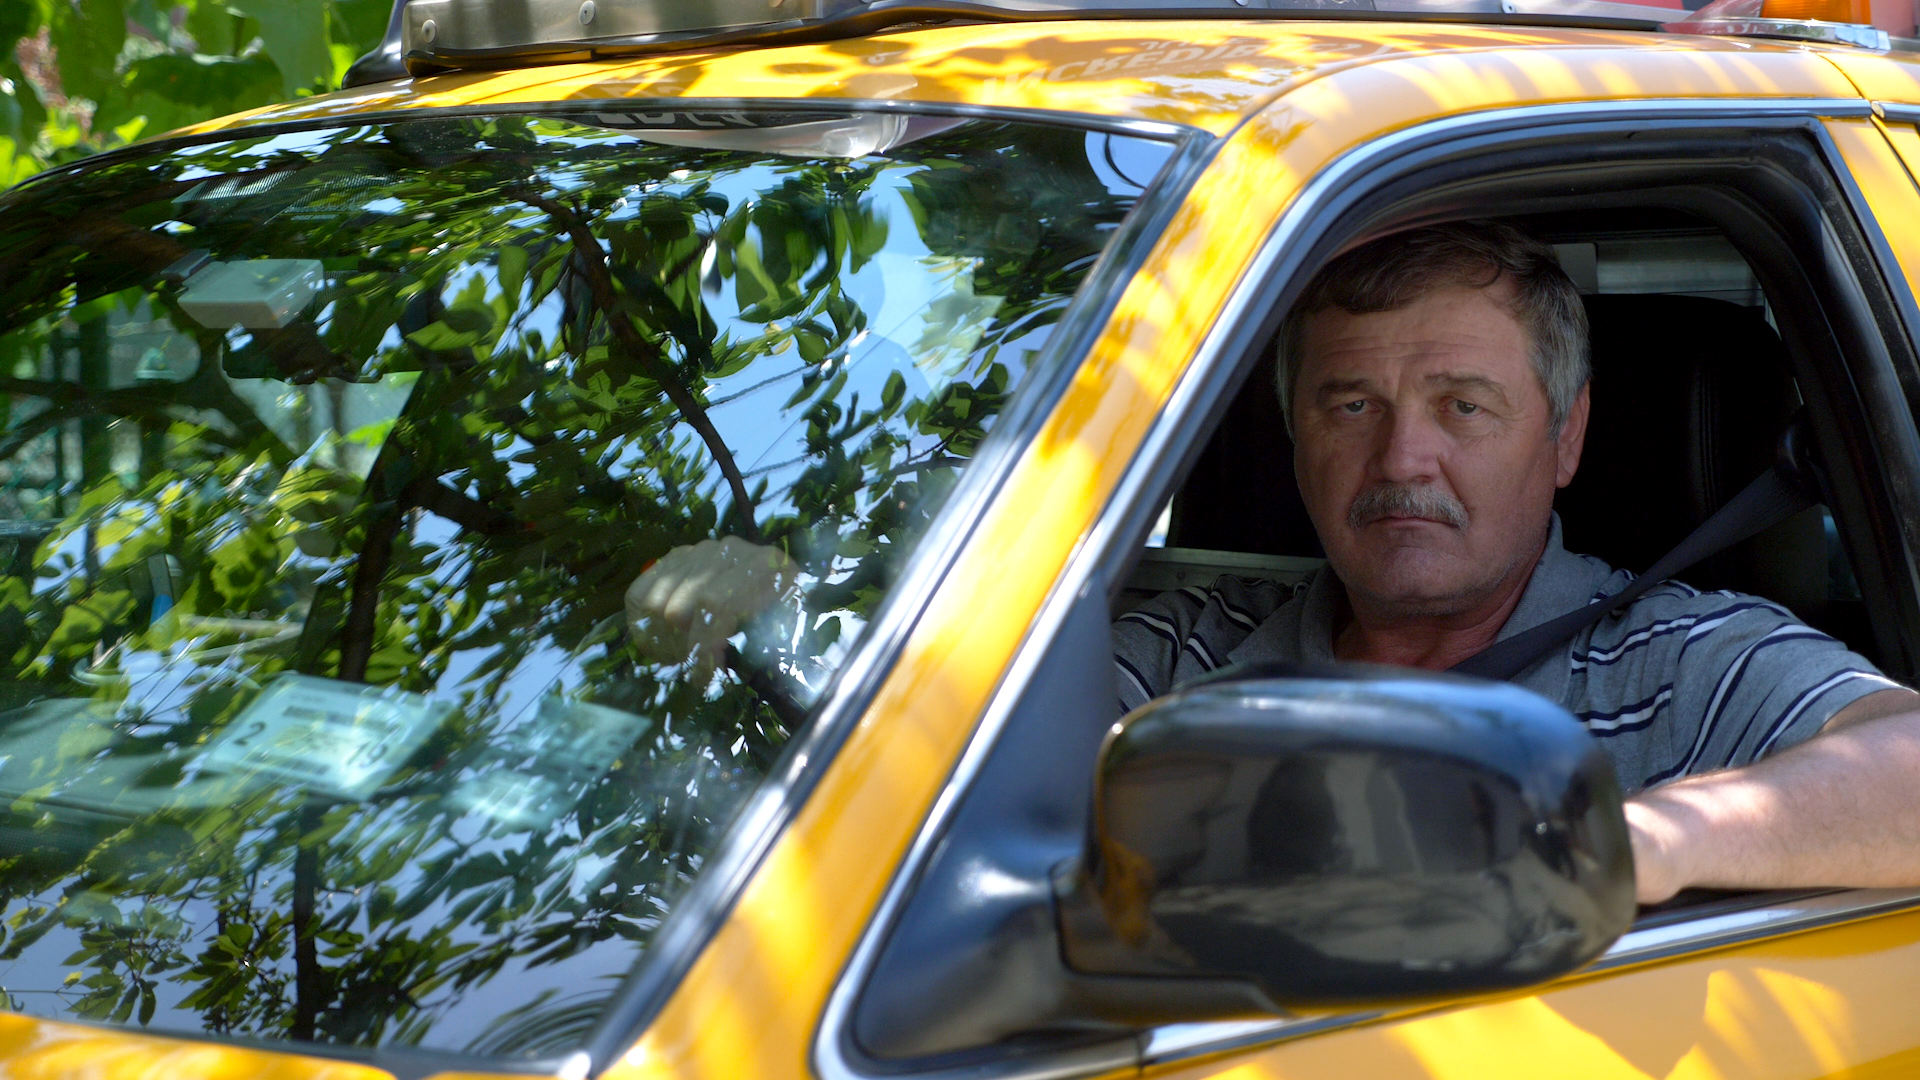 Driver in Taxi